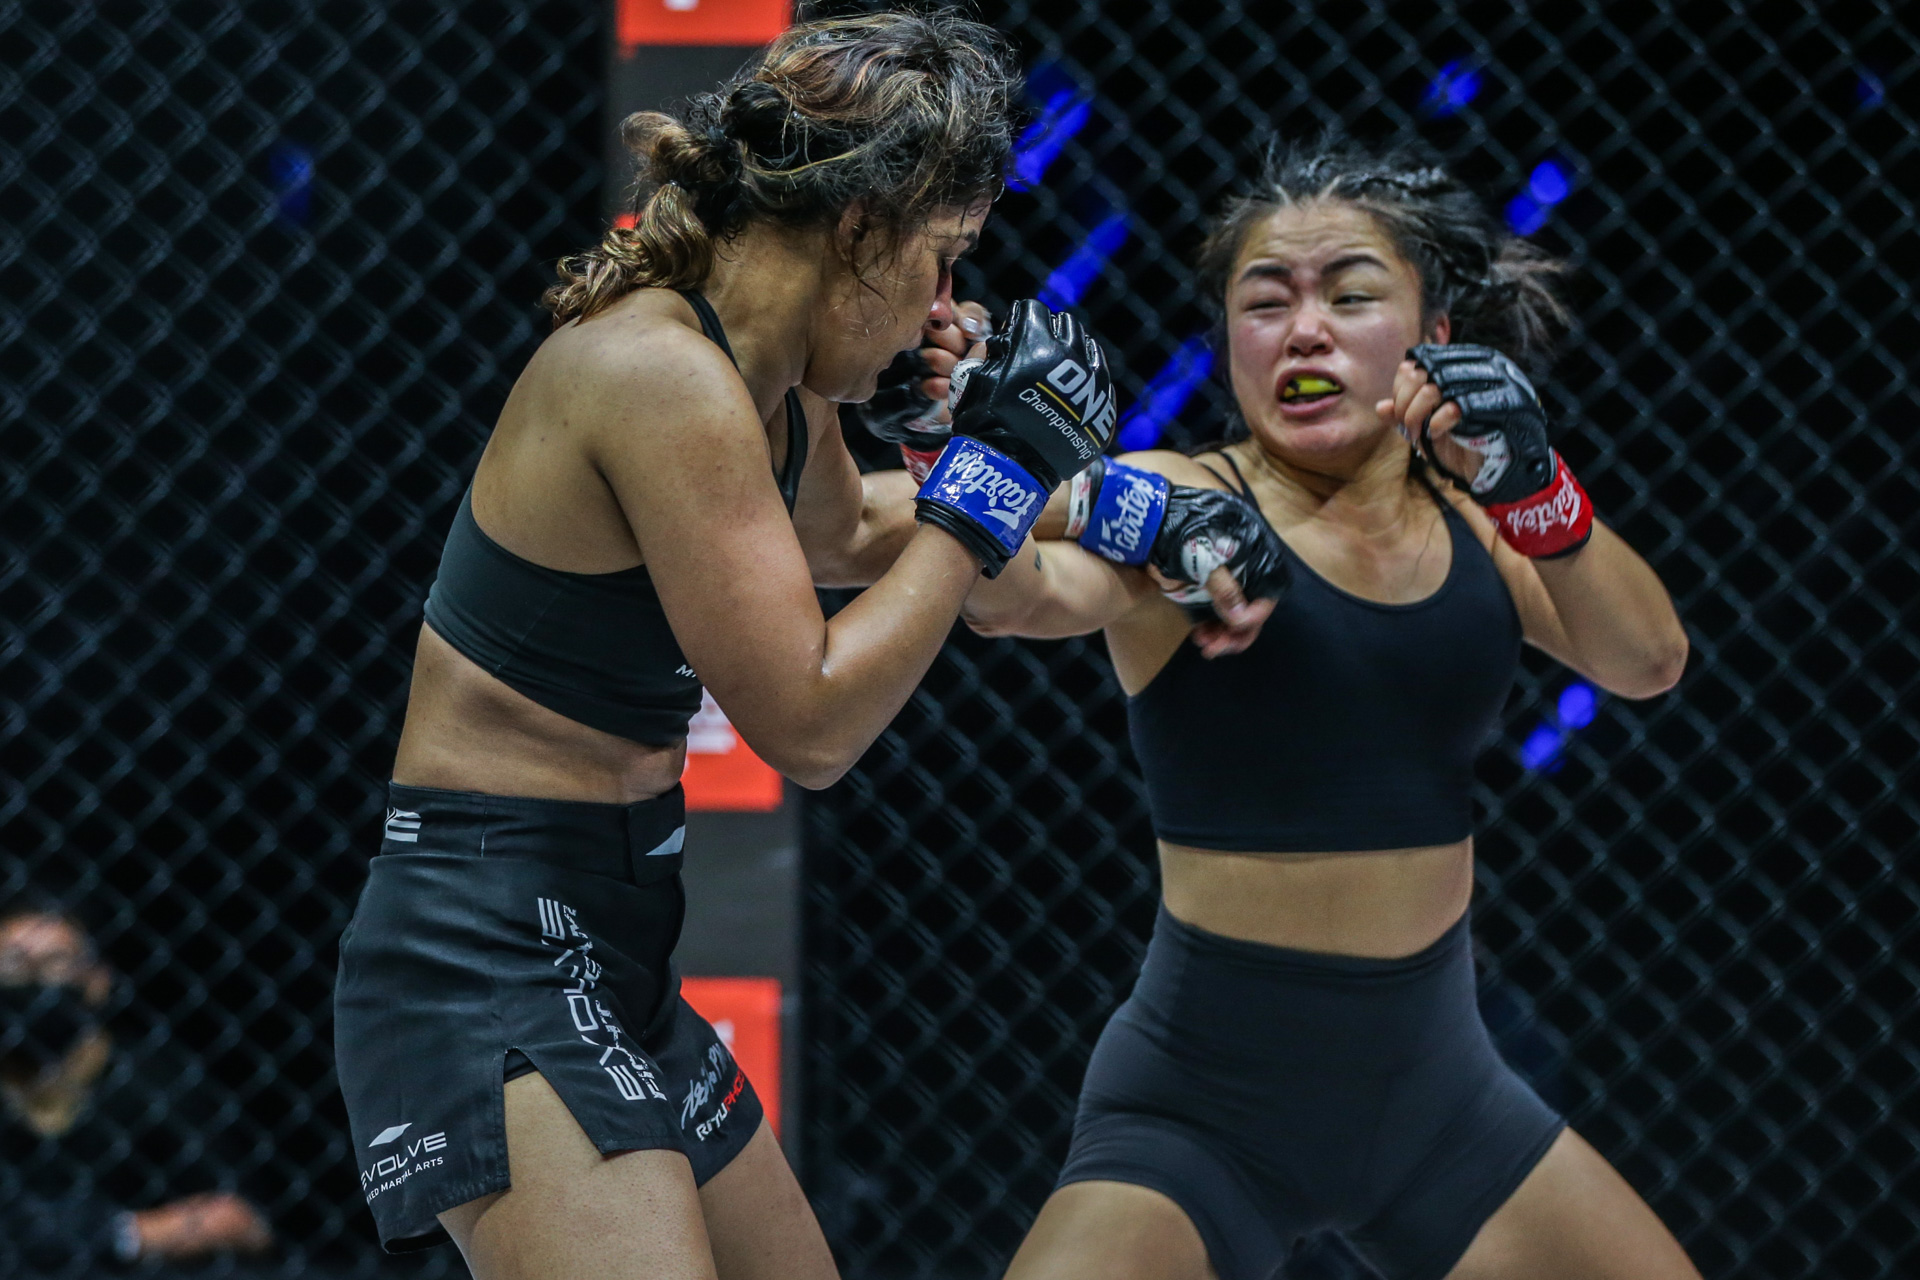 Scenes from the atomweight bout between MMA stars Ritu Phogat and Bi Nguyen at ONE: DANGAL on 15 May